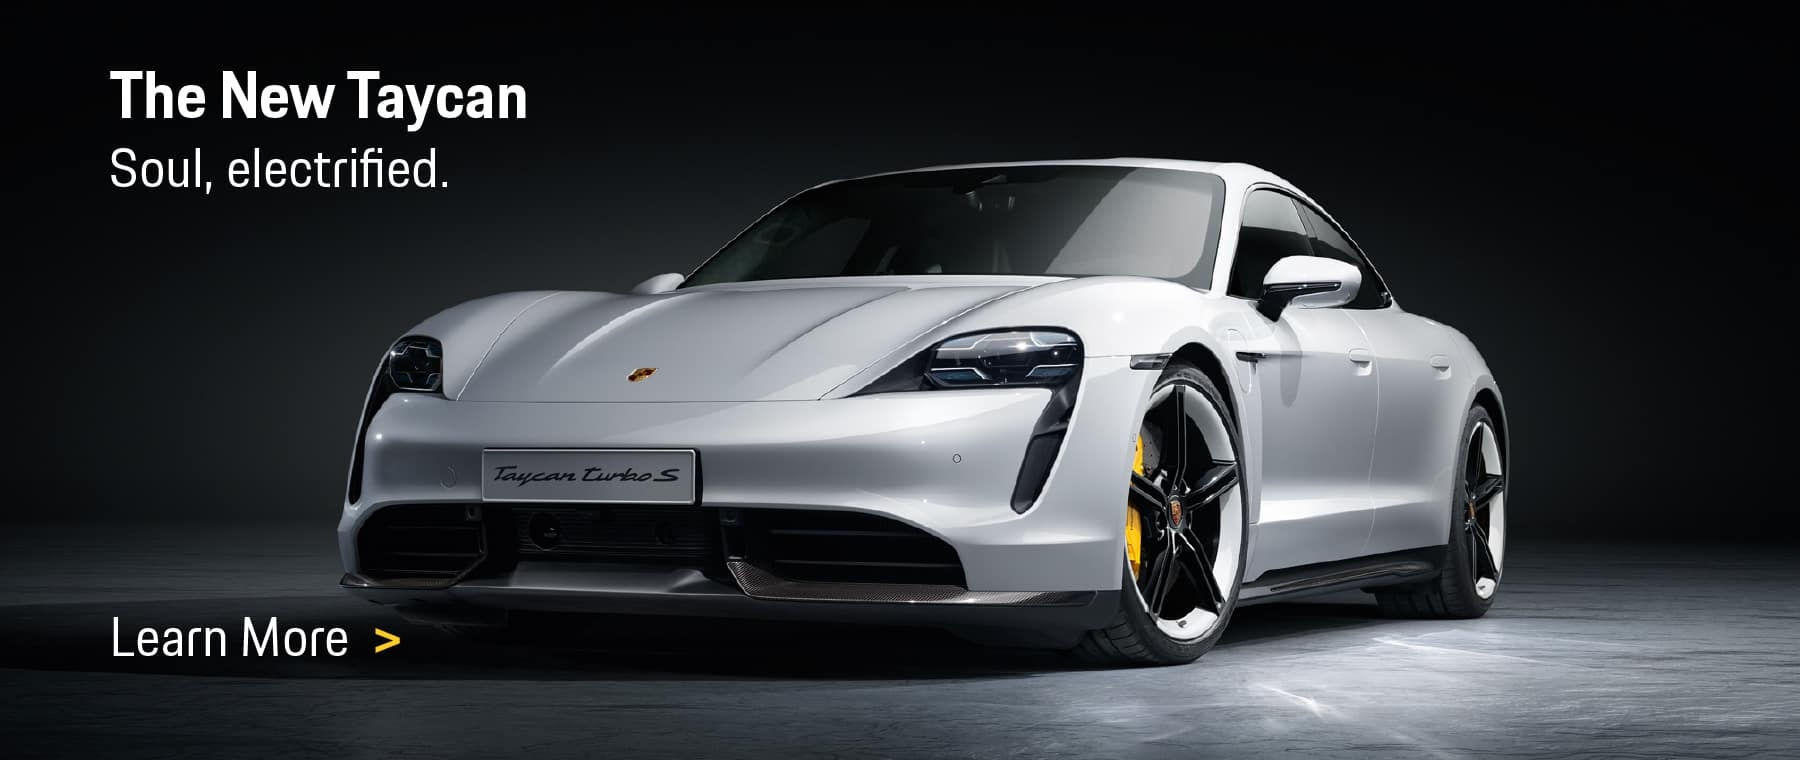 Autobahn Porsche Fort Worth | The Taycan is Arriving in a Few Months!